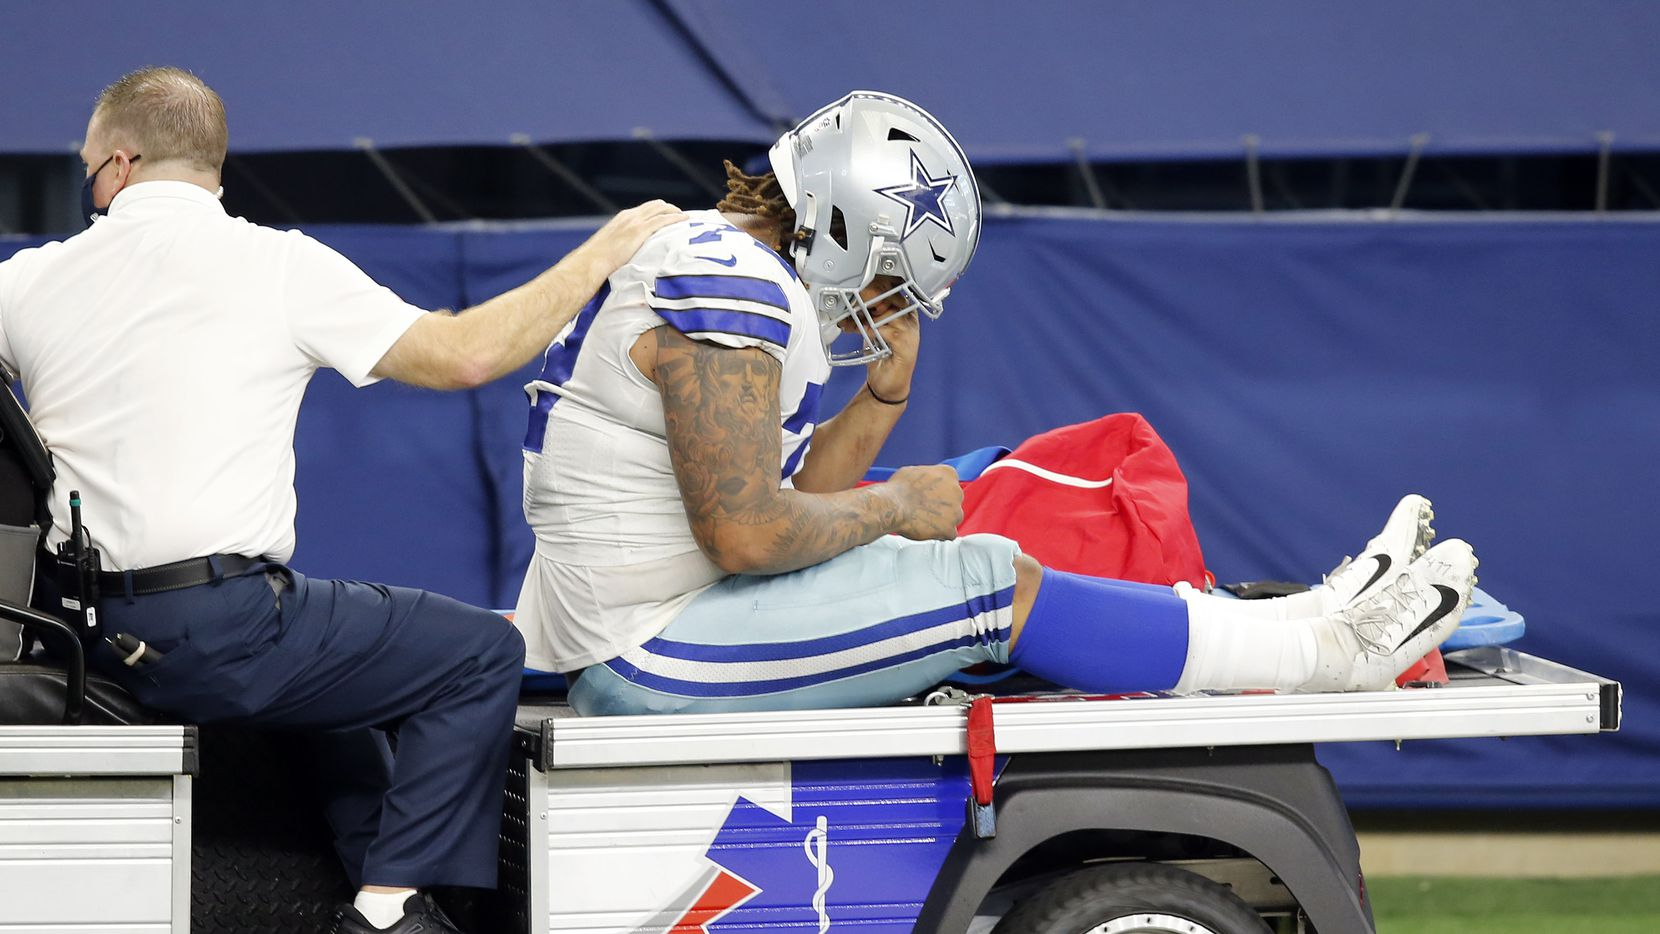 Dallas Cowboys defensive tackle Trysten Hill (72) is carted off the field after sustaining an injury against the New York Giants at AT&T Stadium Stadium in Arlington, Texas, Sunday, October 11, 2020.